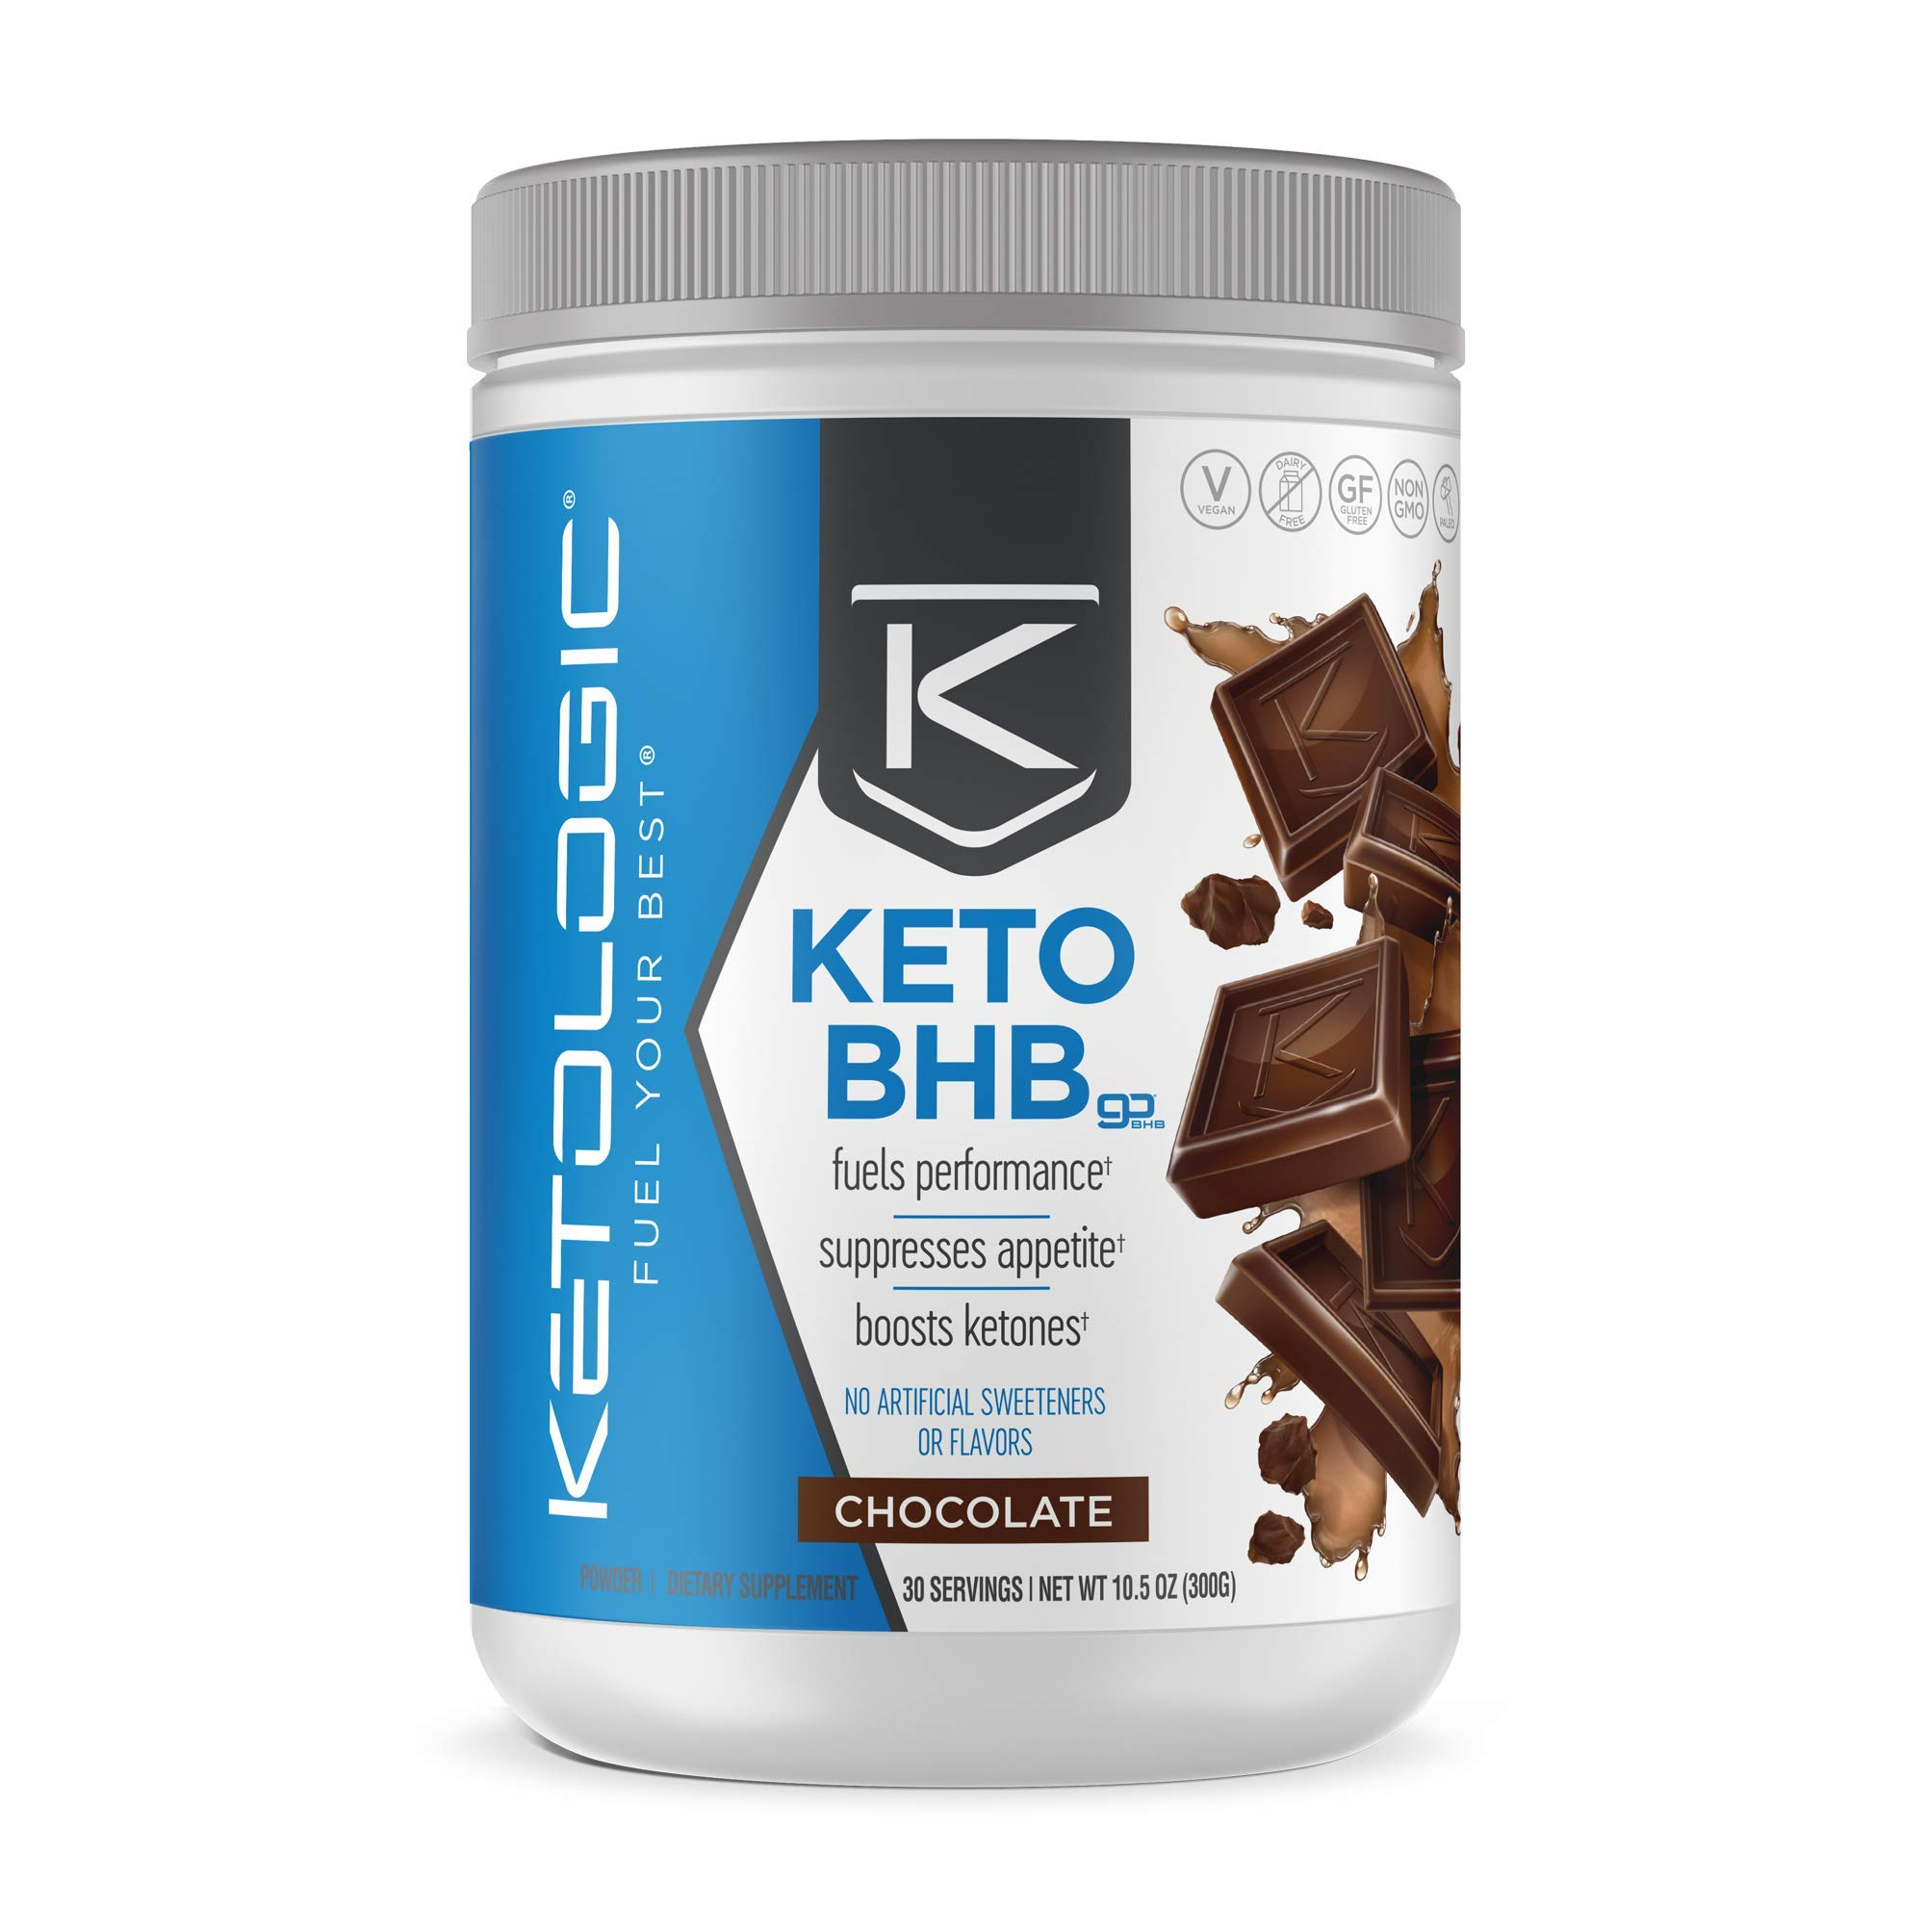 KetoLogic Keto BHB - Exogenous Ketones Supplement | Supports Ketosis & Weight Management, Increases Energy & Focus | Low Carb, Electrolytes, Beta-Hydroxybutyrate BHB Salts | Chocolate - 30 Servings